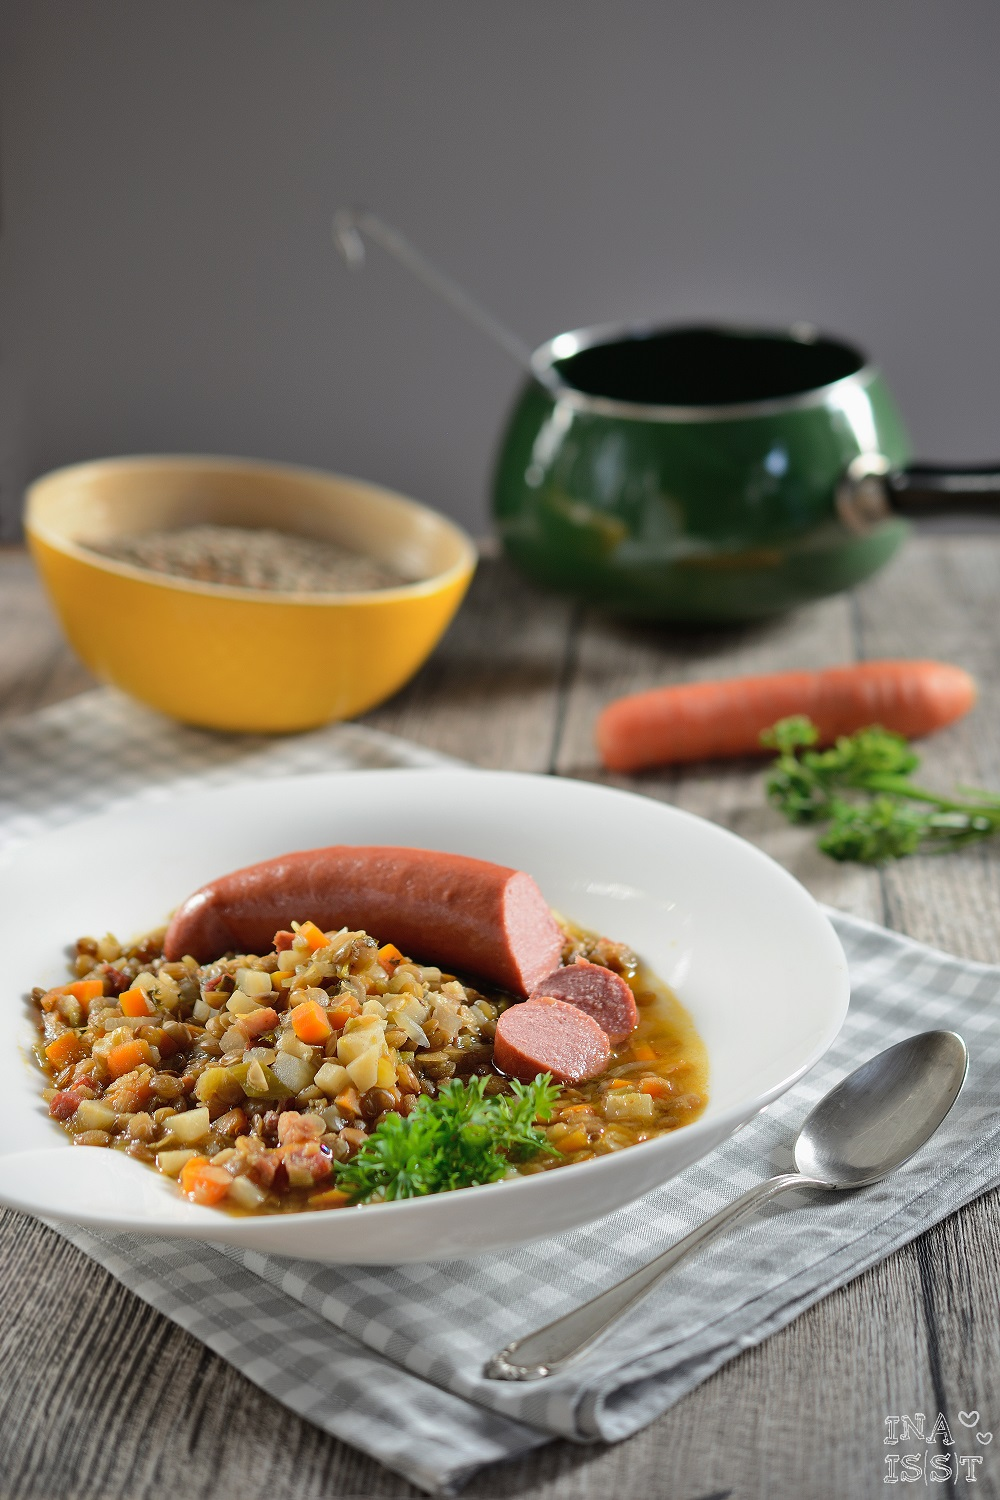 ina is s t einfache linsensuppe mit rindswurst easy peasy lentil soup with beef sausage. Black Bedroom Furniture Sets. Home Design Ideas